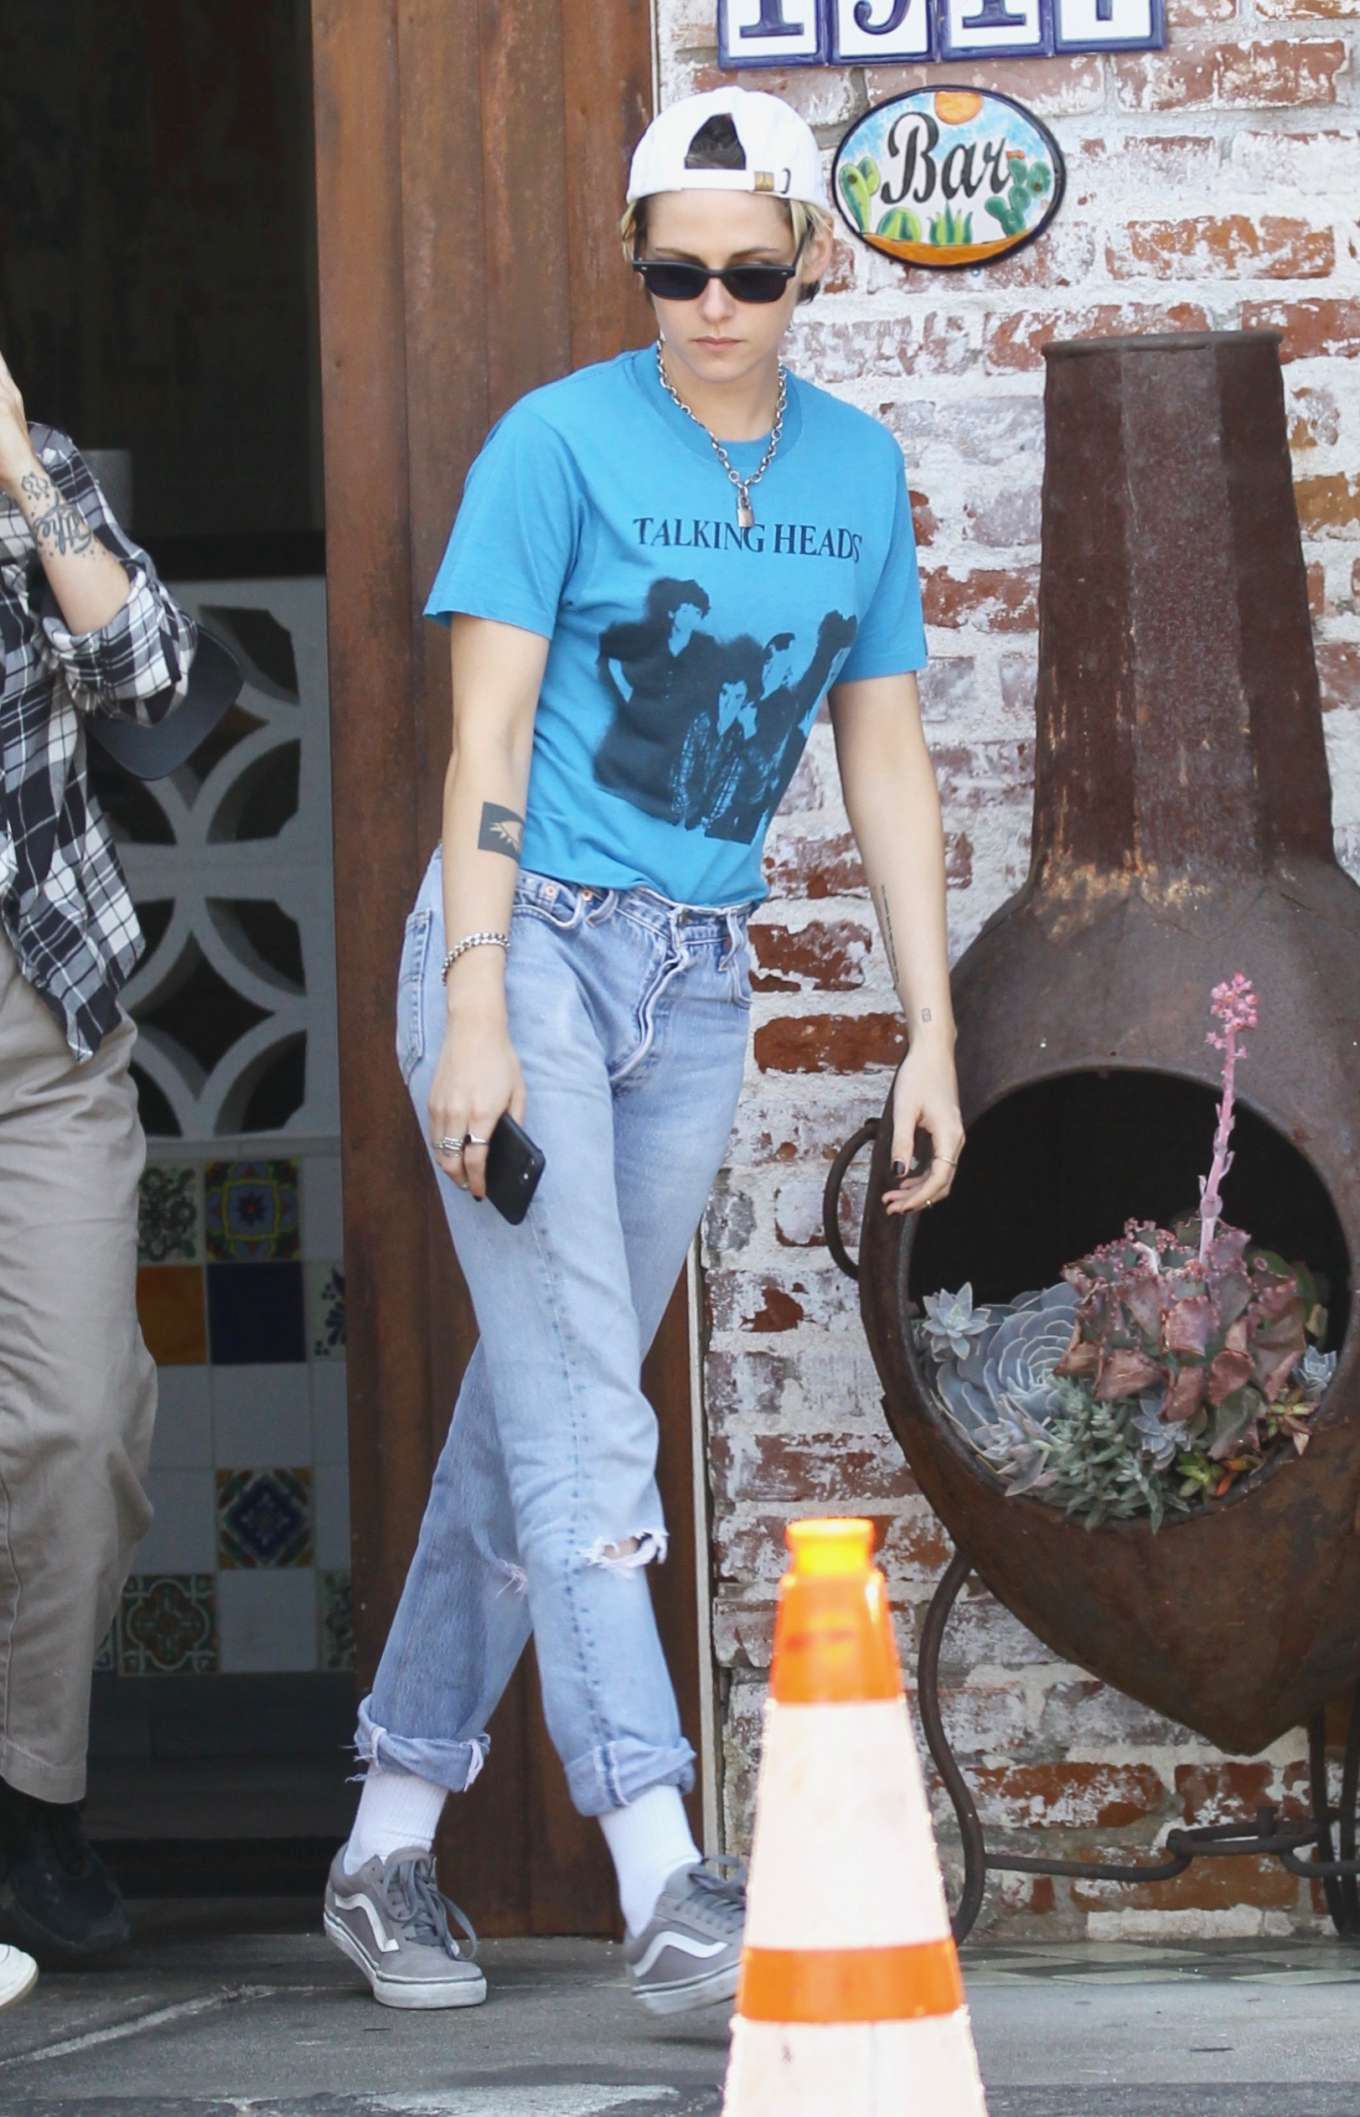 Kristen Stewart - Grabbing lunch at a Cantina in Los Angeles